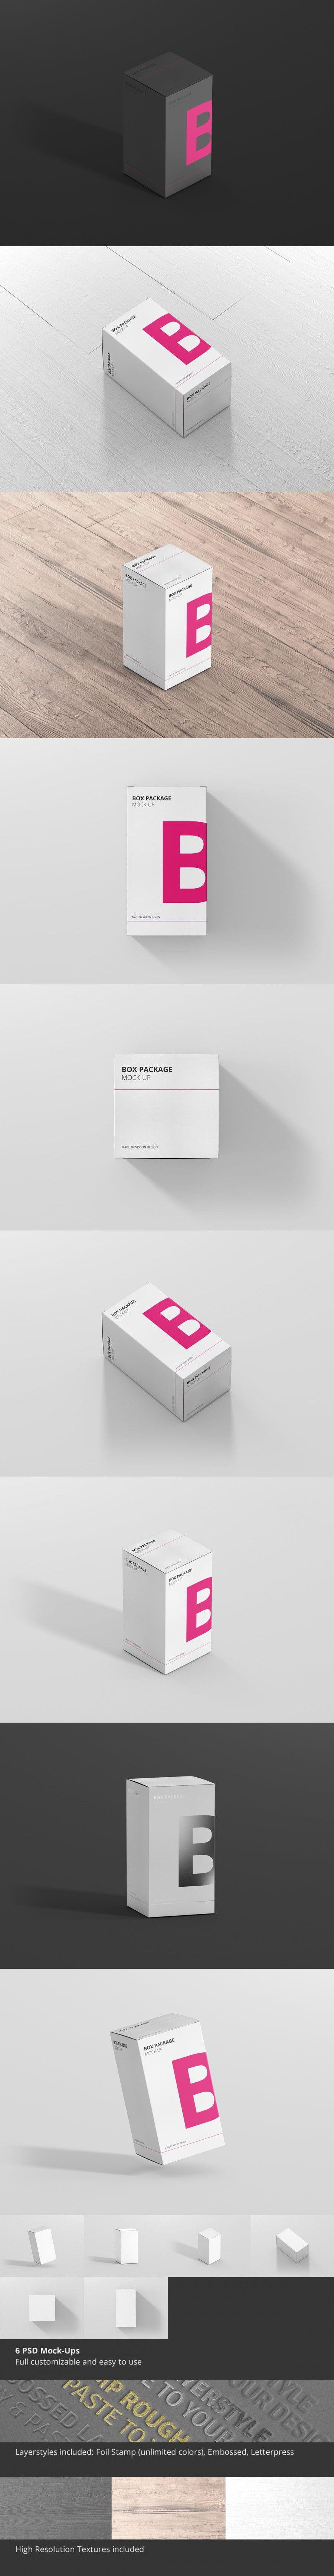 Download Package Box Mock Up Rectangle Box Packaging Mockup Rectangle